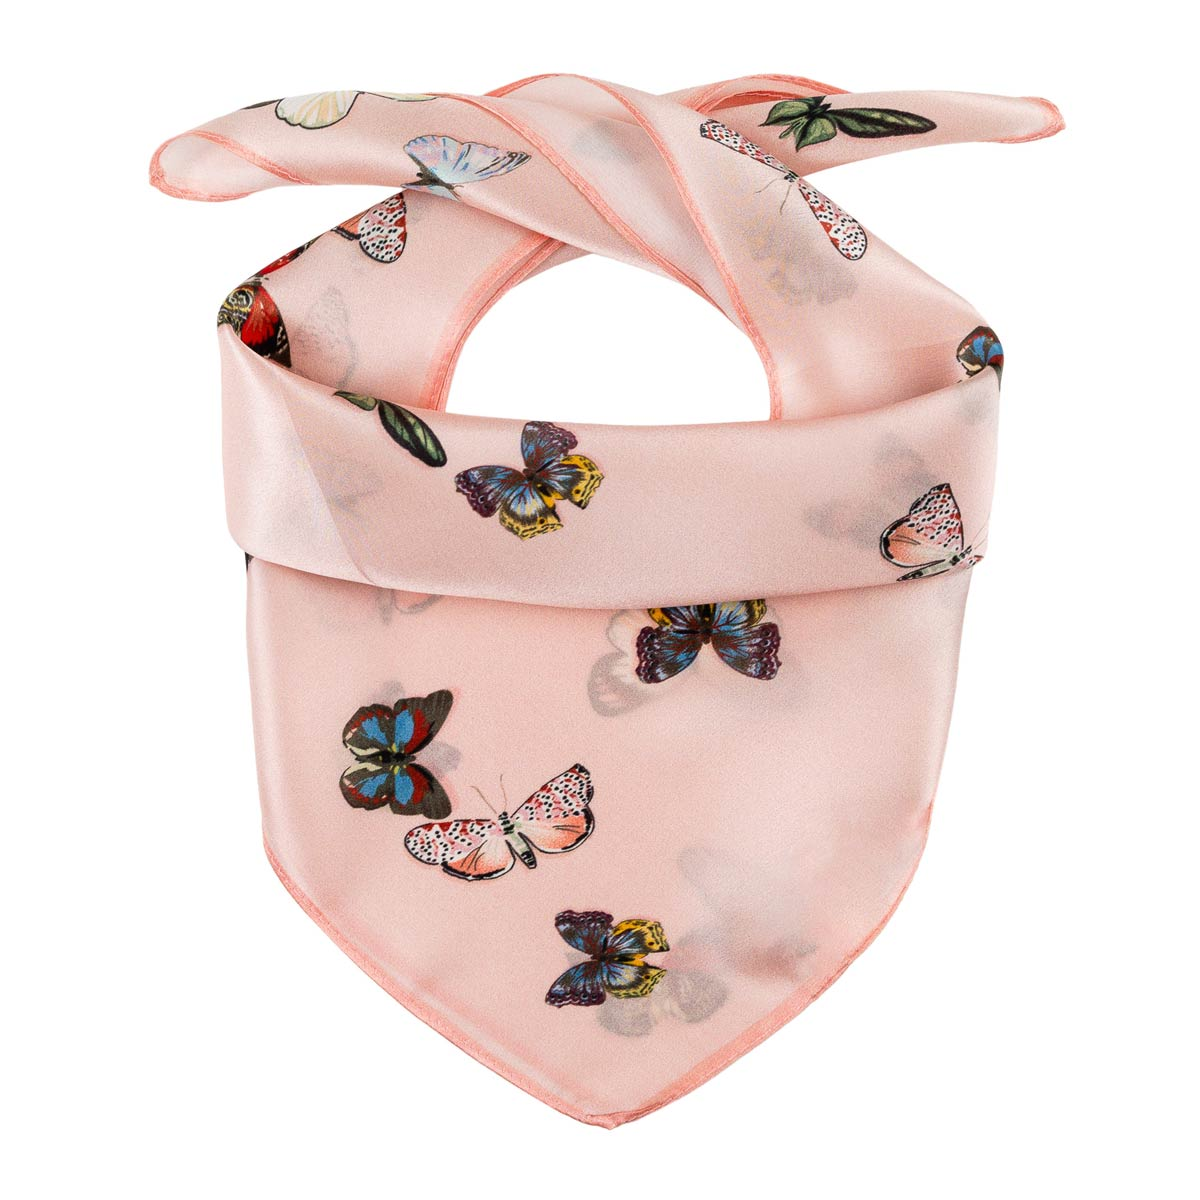 AT-06332-F12-foulard-carre-papillons roses